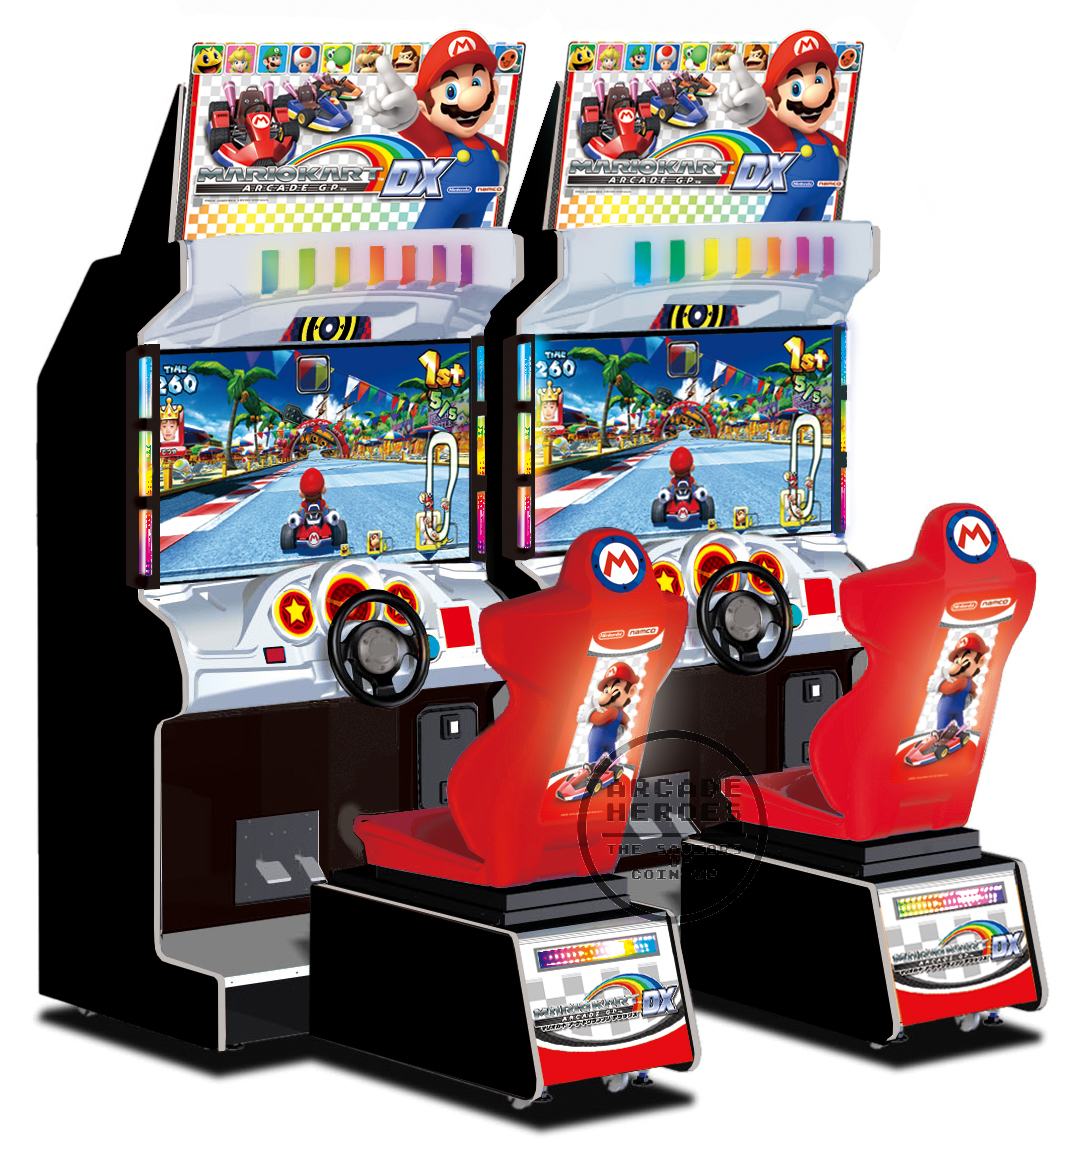 Songs that pop into my head based on my feelings and time of day. Mario-Kart-Arcade-GP-DX-Cabinet